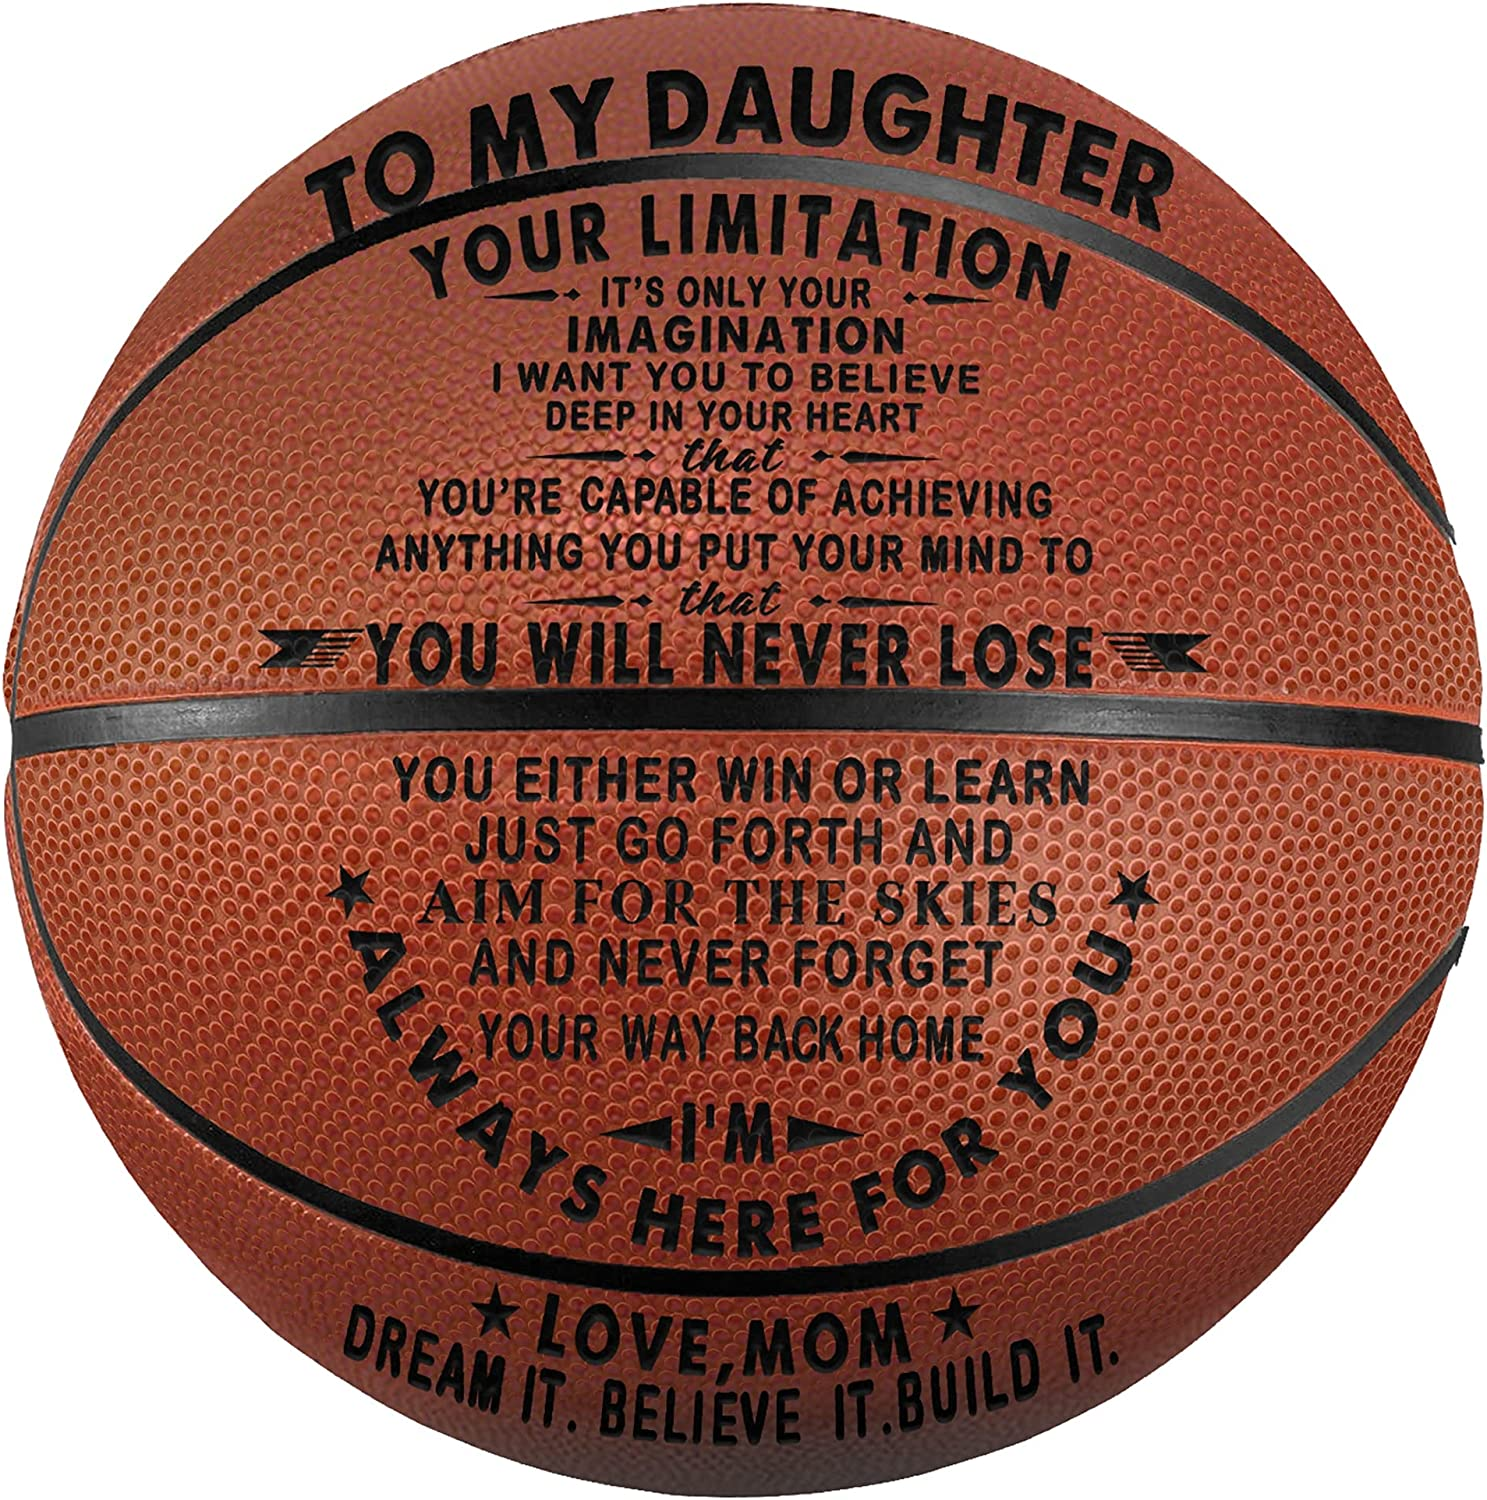 Tree New product!! Life Seasonal Wrap Introduction Engraved Basketball Gifts for - It Limitation Son Your